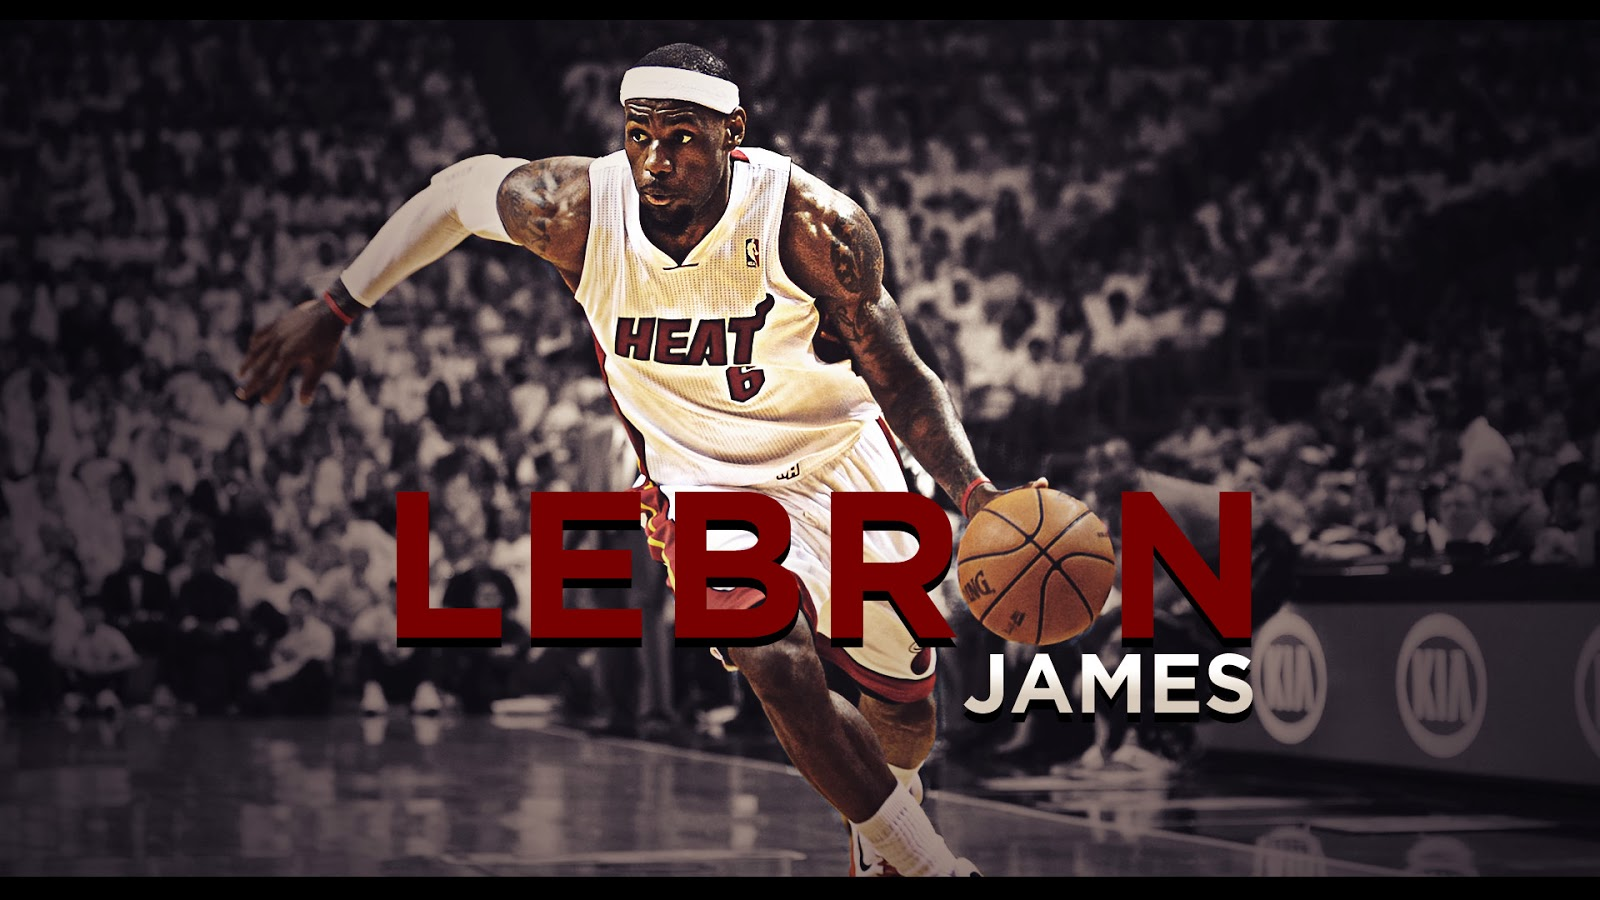 Its All About Basketball Lebron James New Wallpaper 2014 1600x900